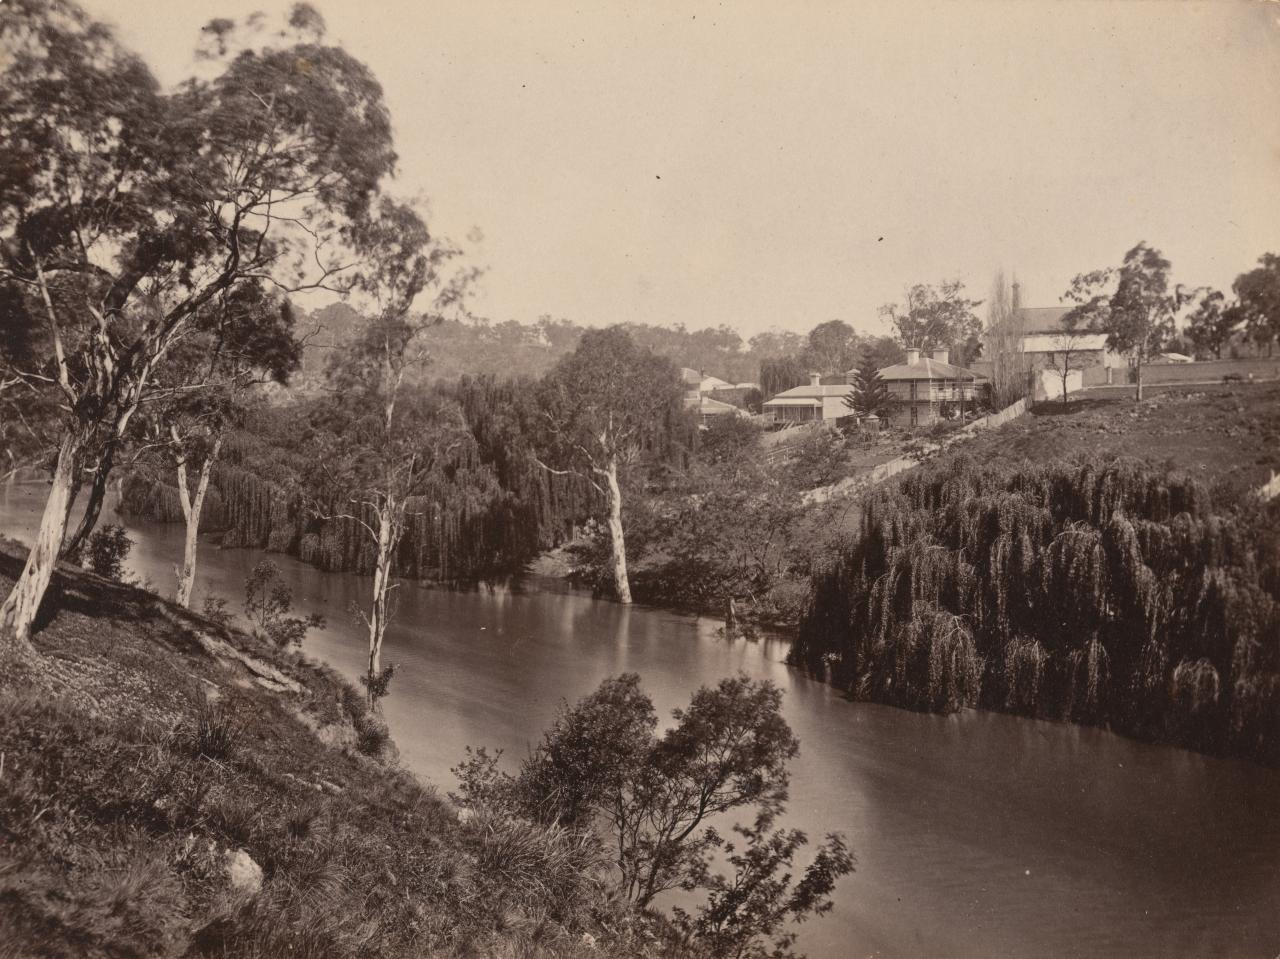 The Yarra at Abbotsford